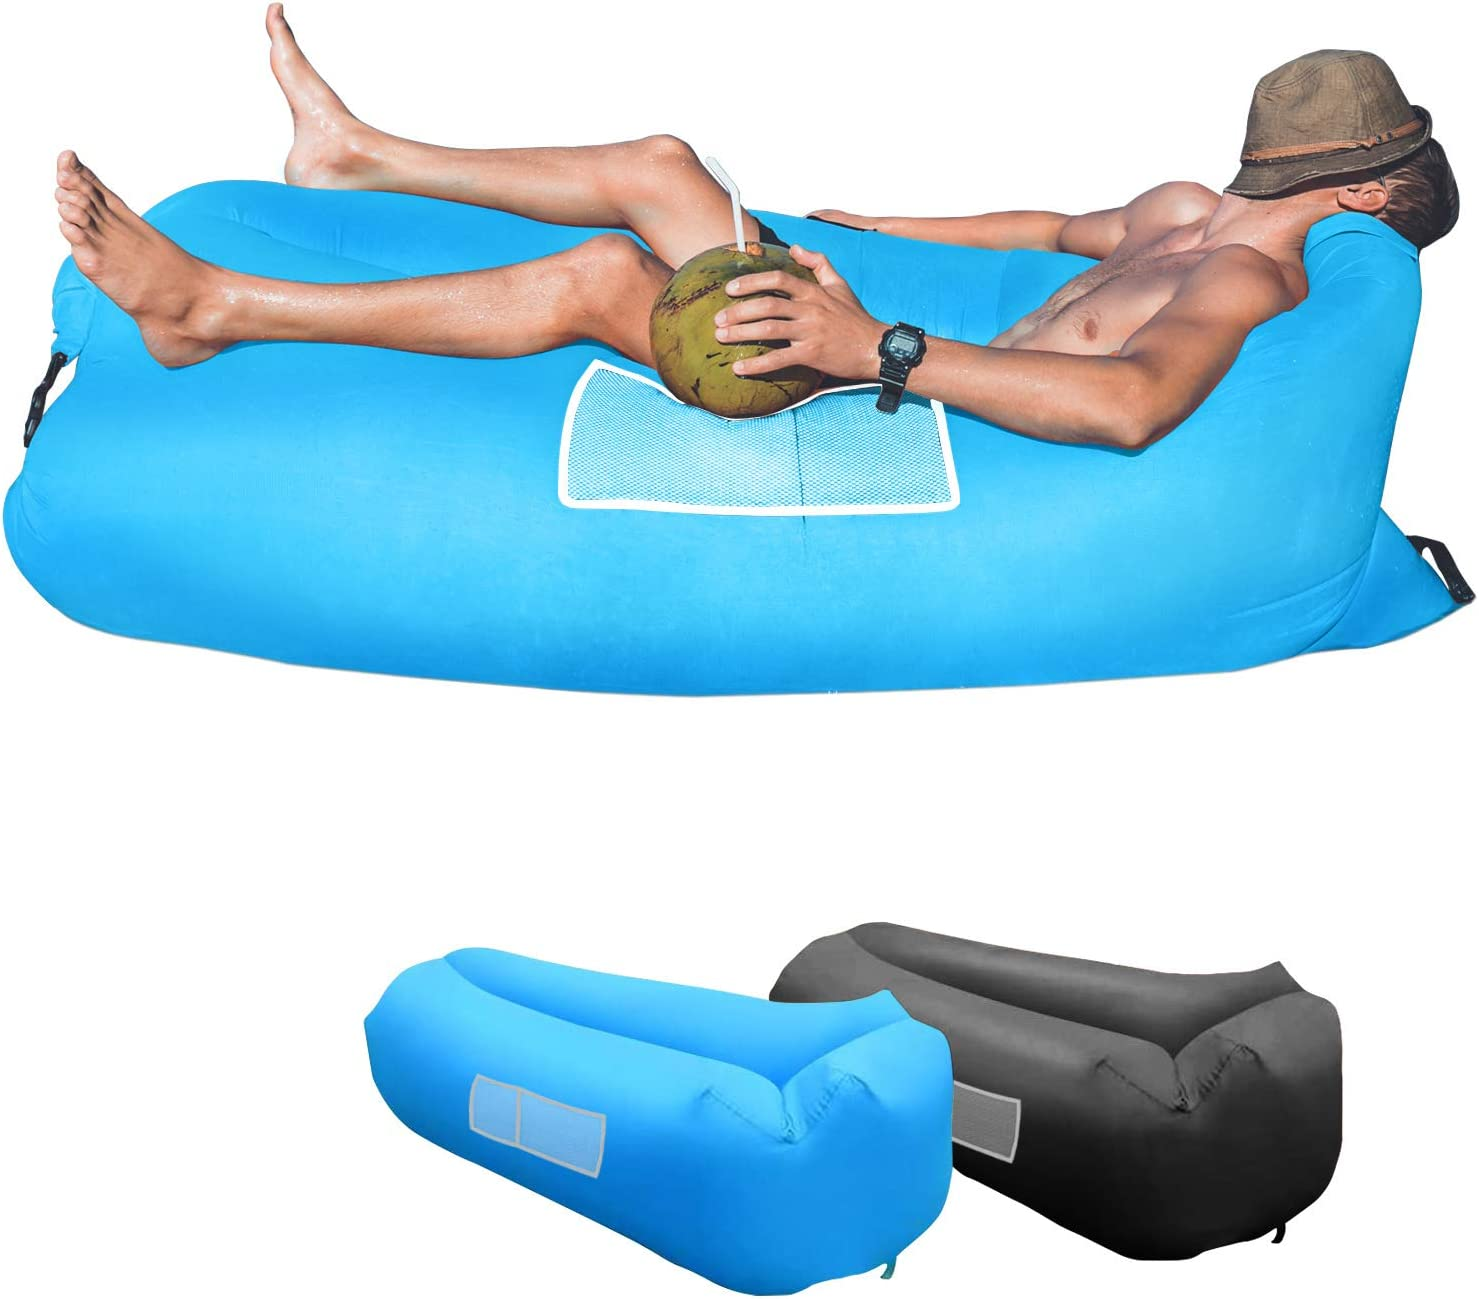 Kxly Inflatable Air Lounger